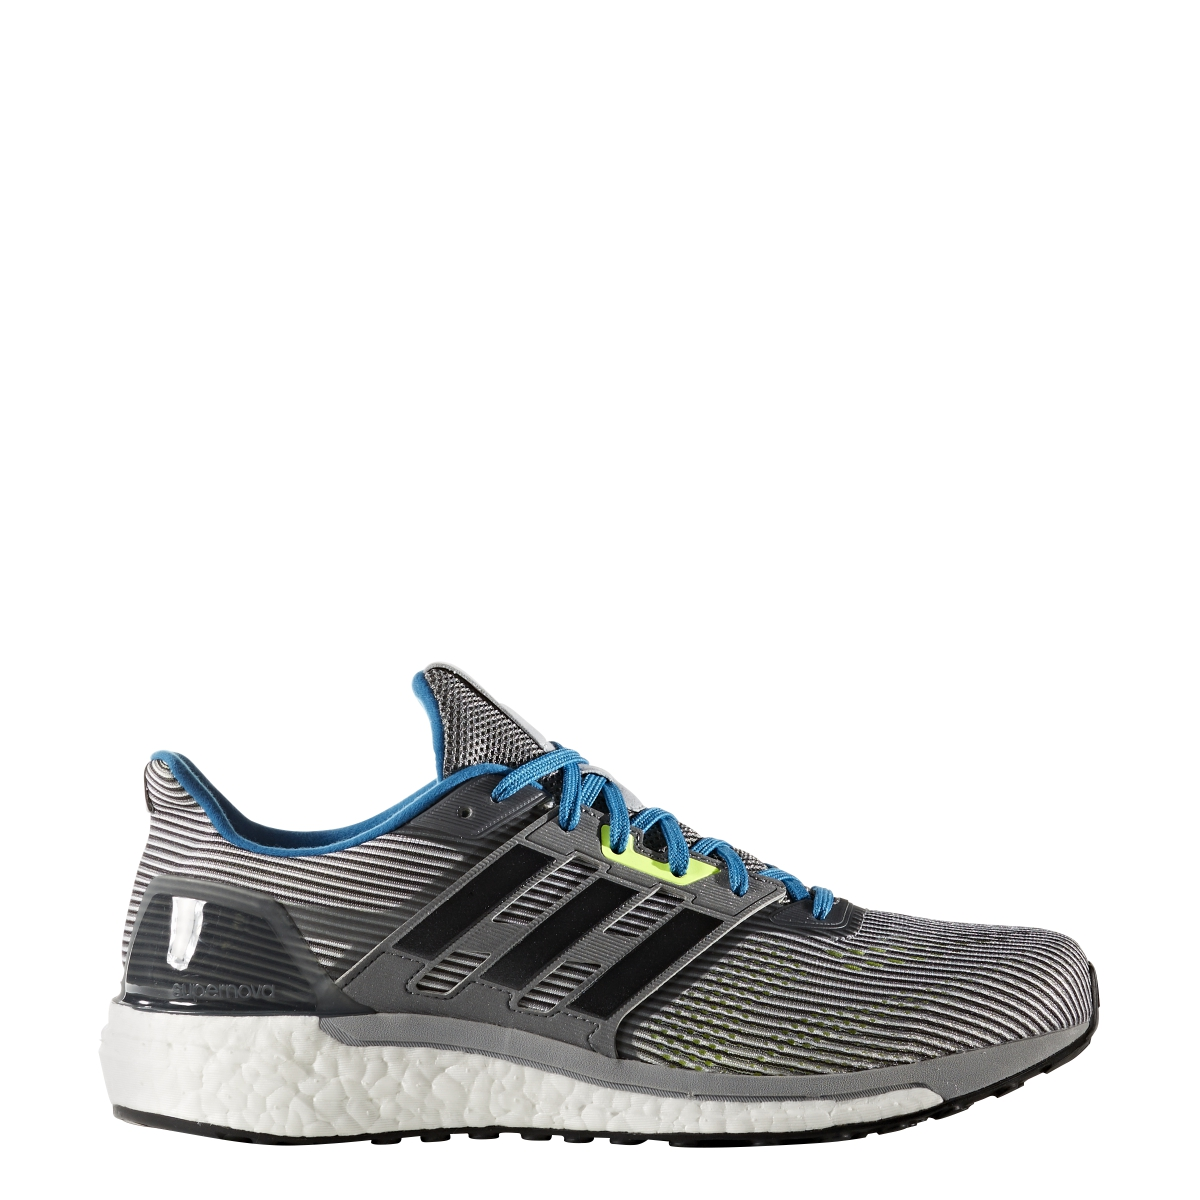 promo code 721a0 9ec15 ... Mr Ms Men s Adidas Supernova Supernova Supernova Running Shoe Grey Black Blue  Durable ...